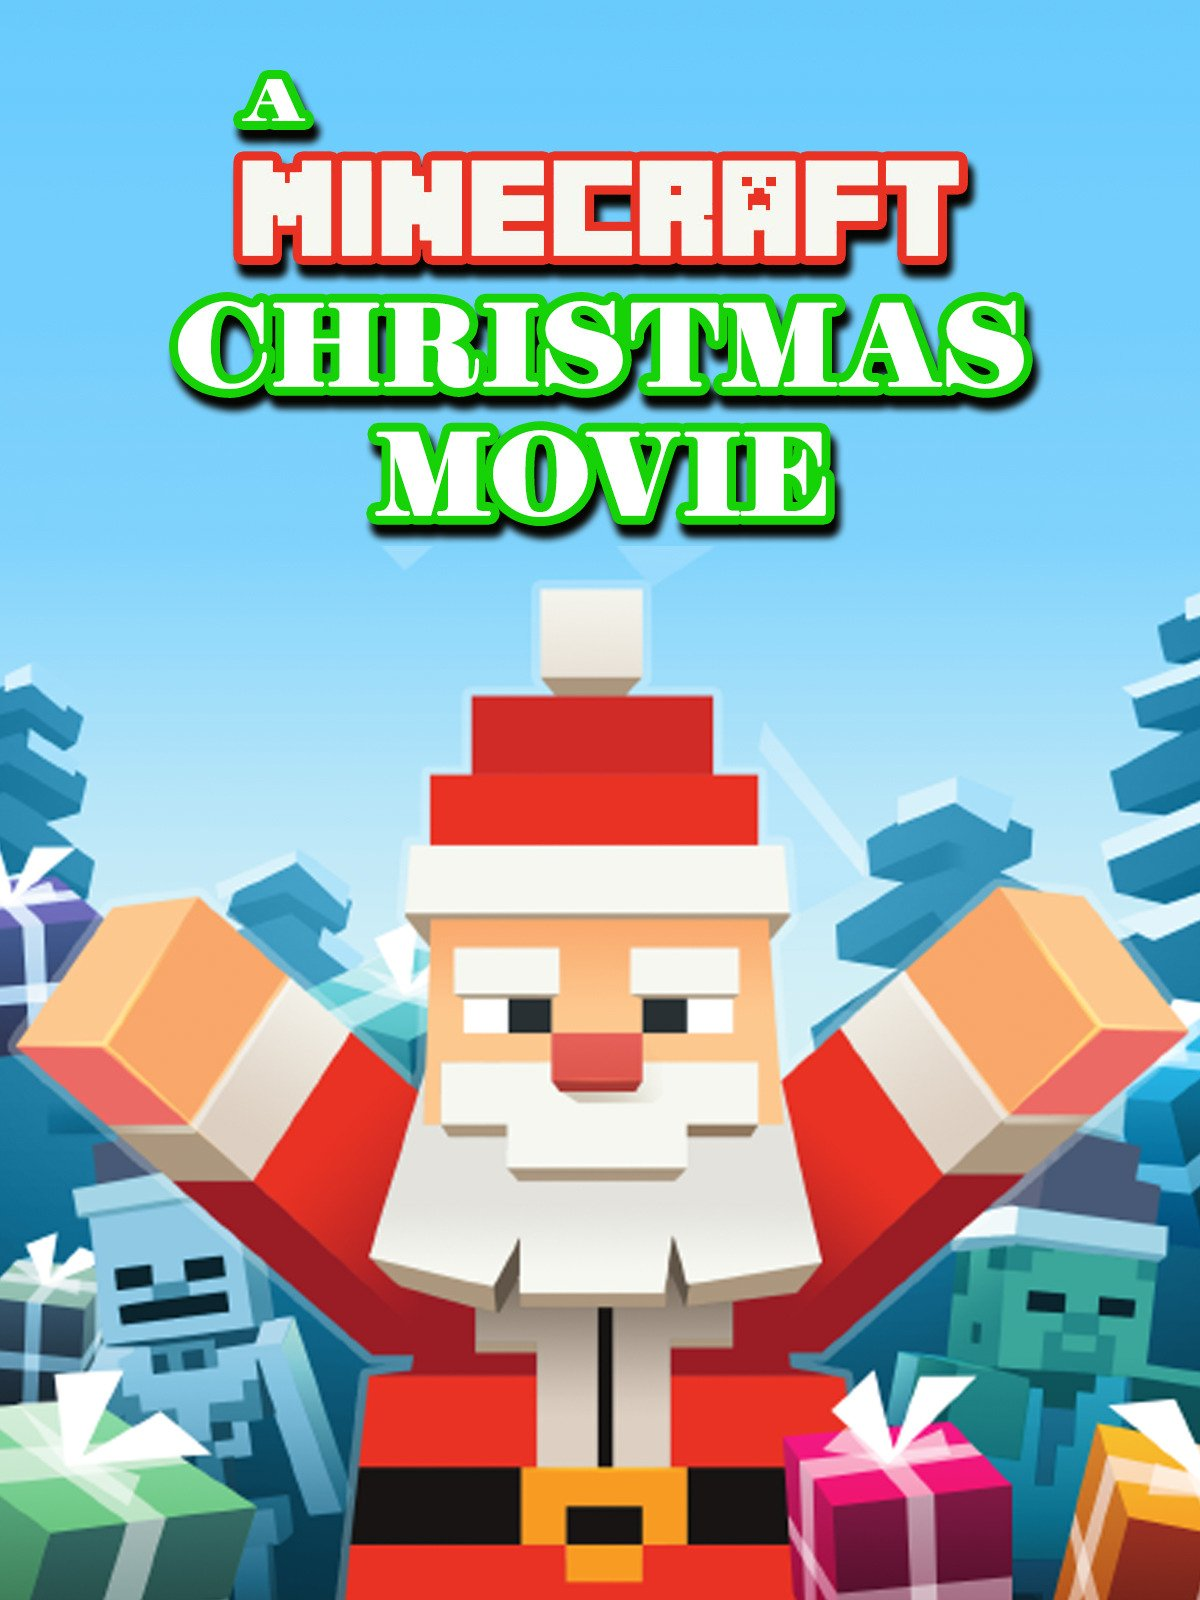 A Minecraft Christmas Movie